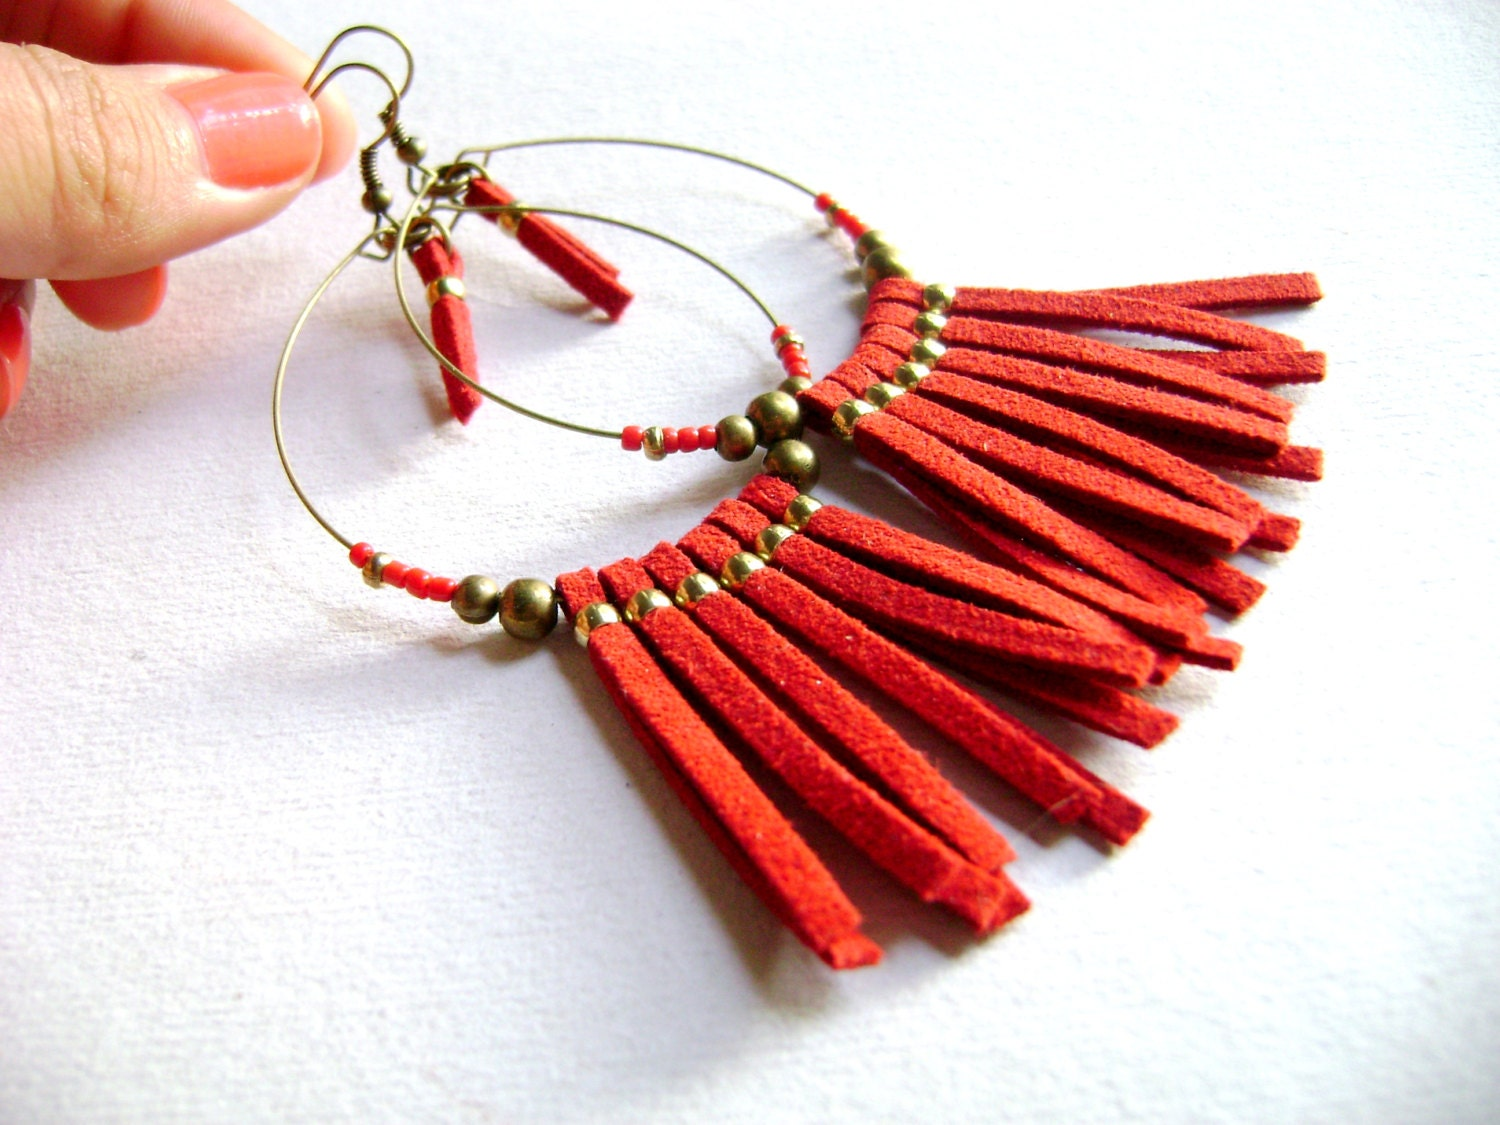 Wildly - Carmine red faux suede leather golden beads boho chic long earrings - DivinaLocura